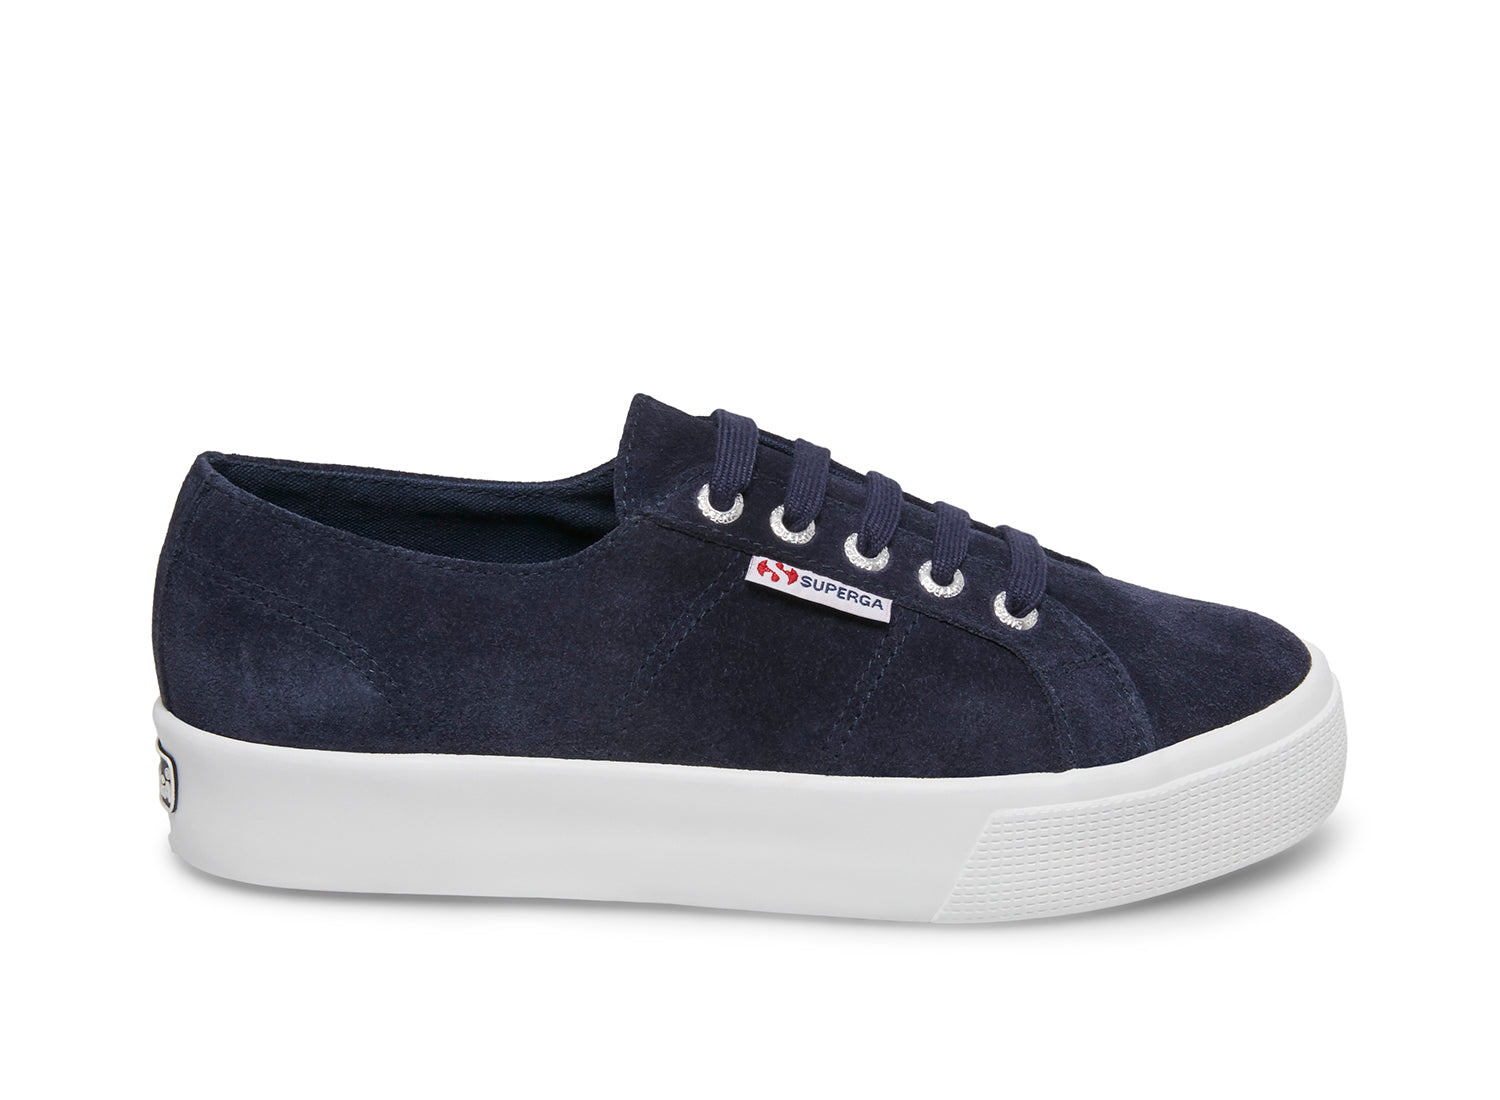 Superga 2730 sueu blue deep sea side